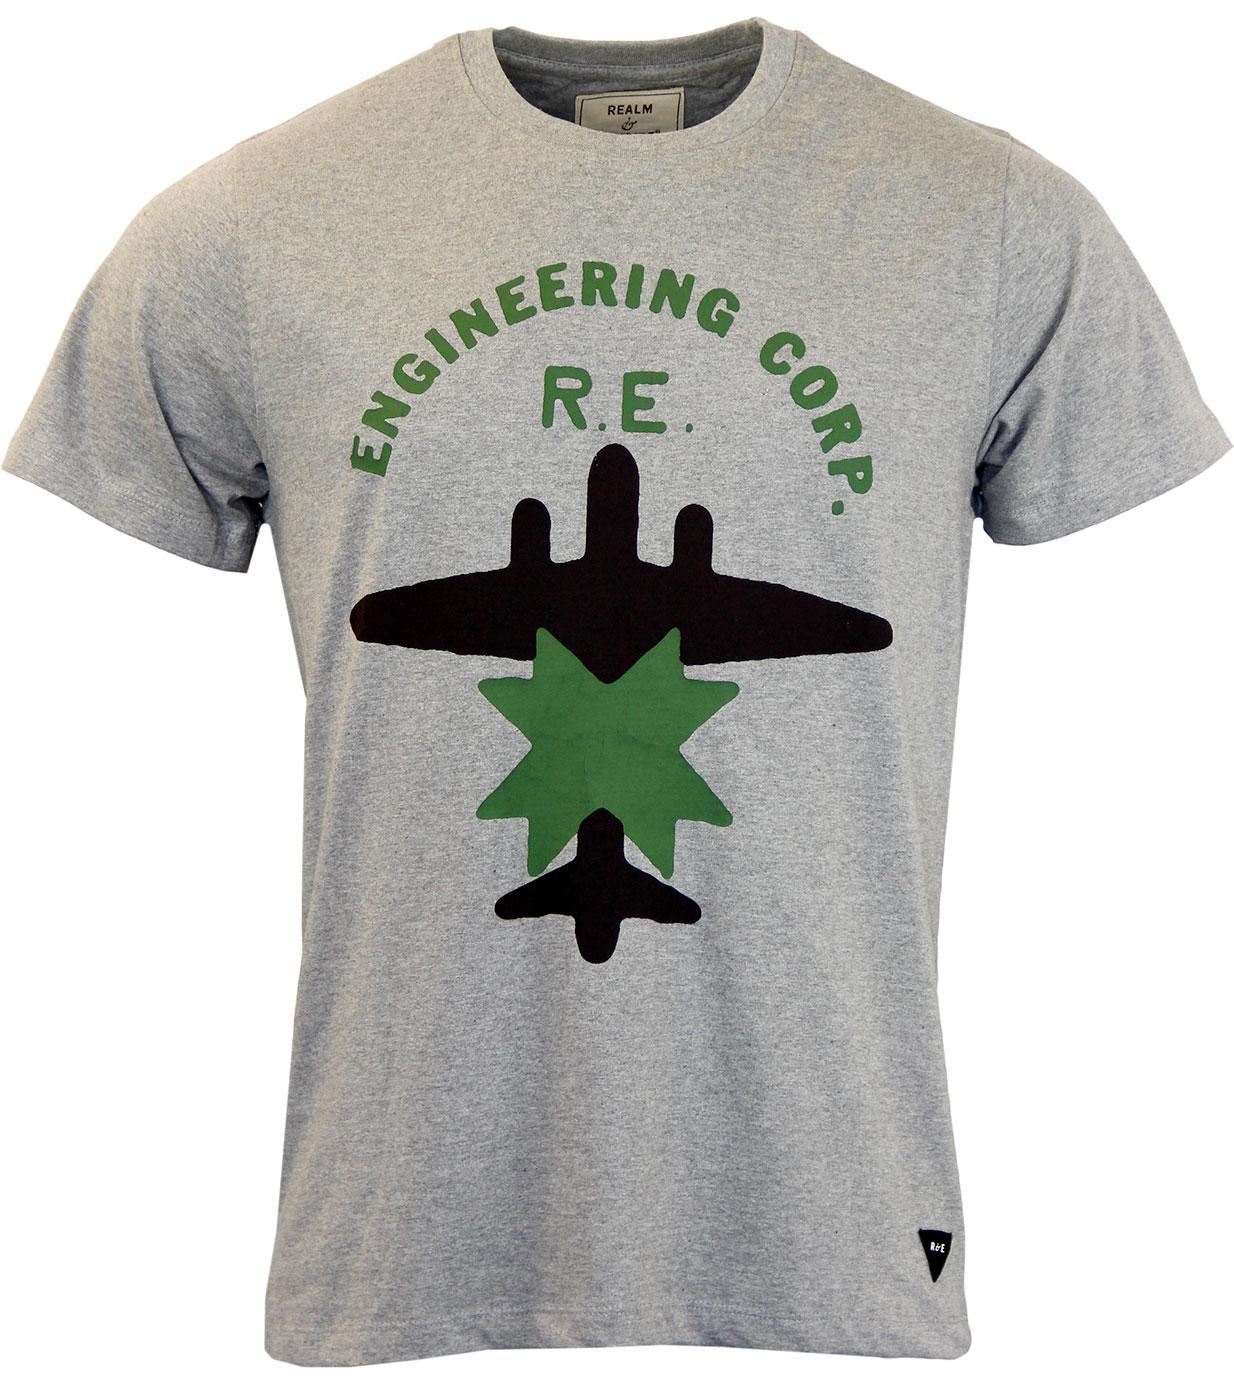 REALM & EMPIRE Retro WWII Engineering Corps Tee